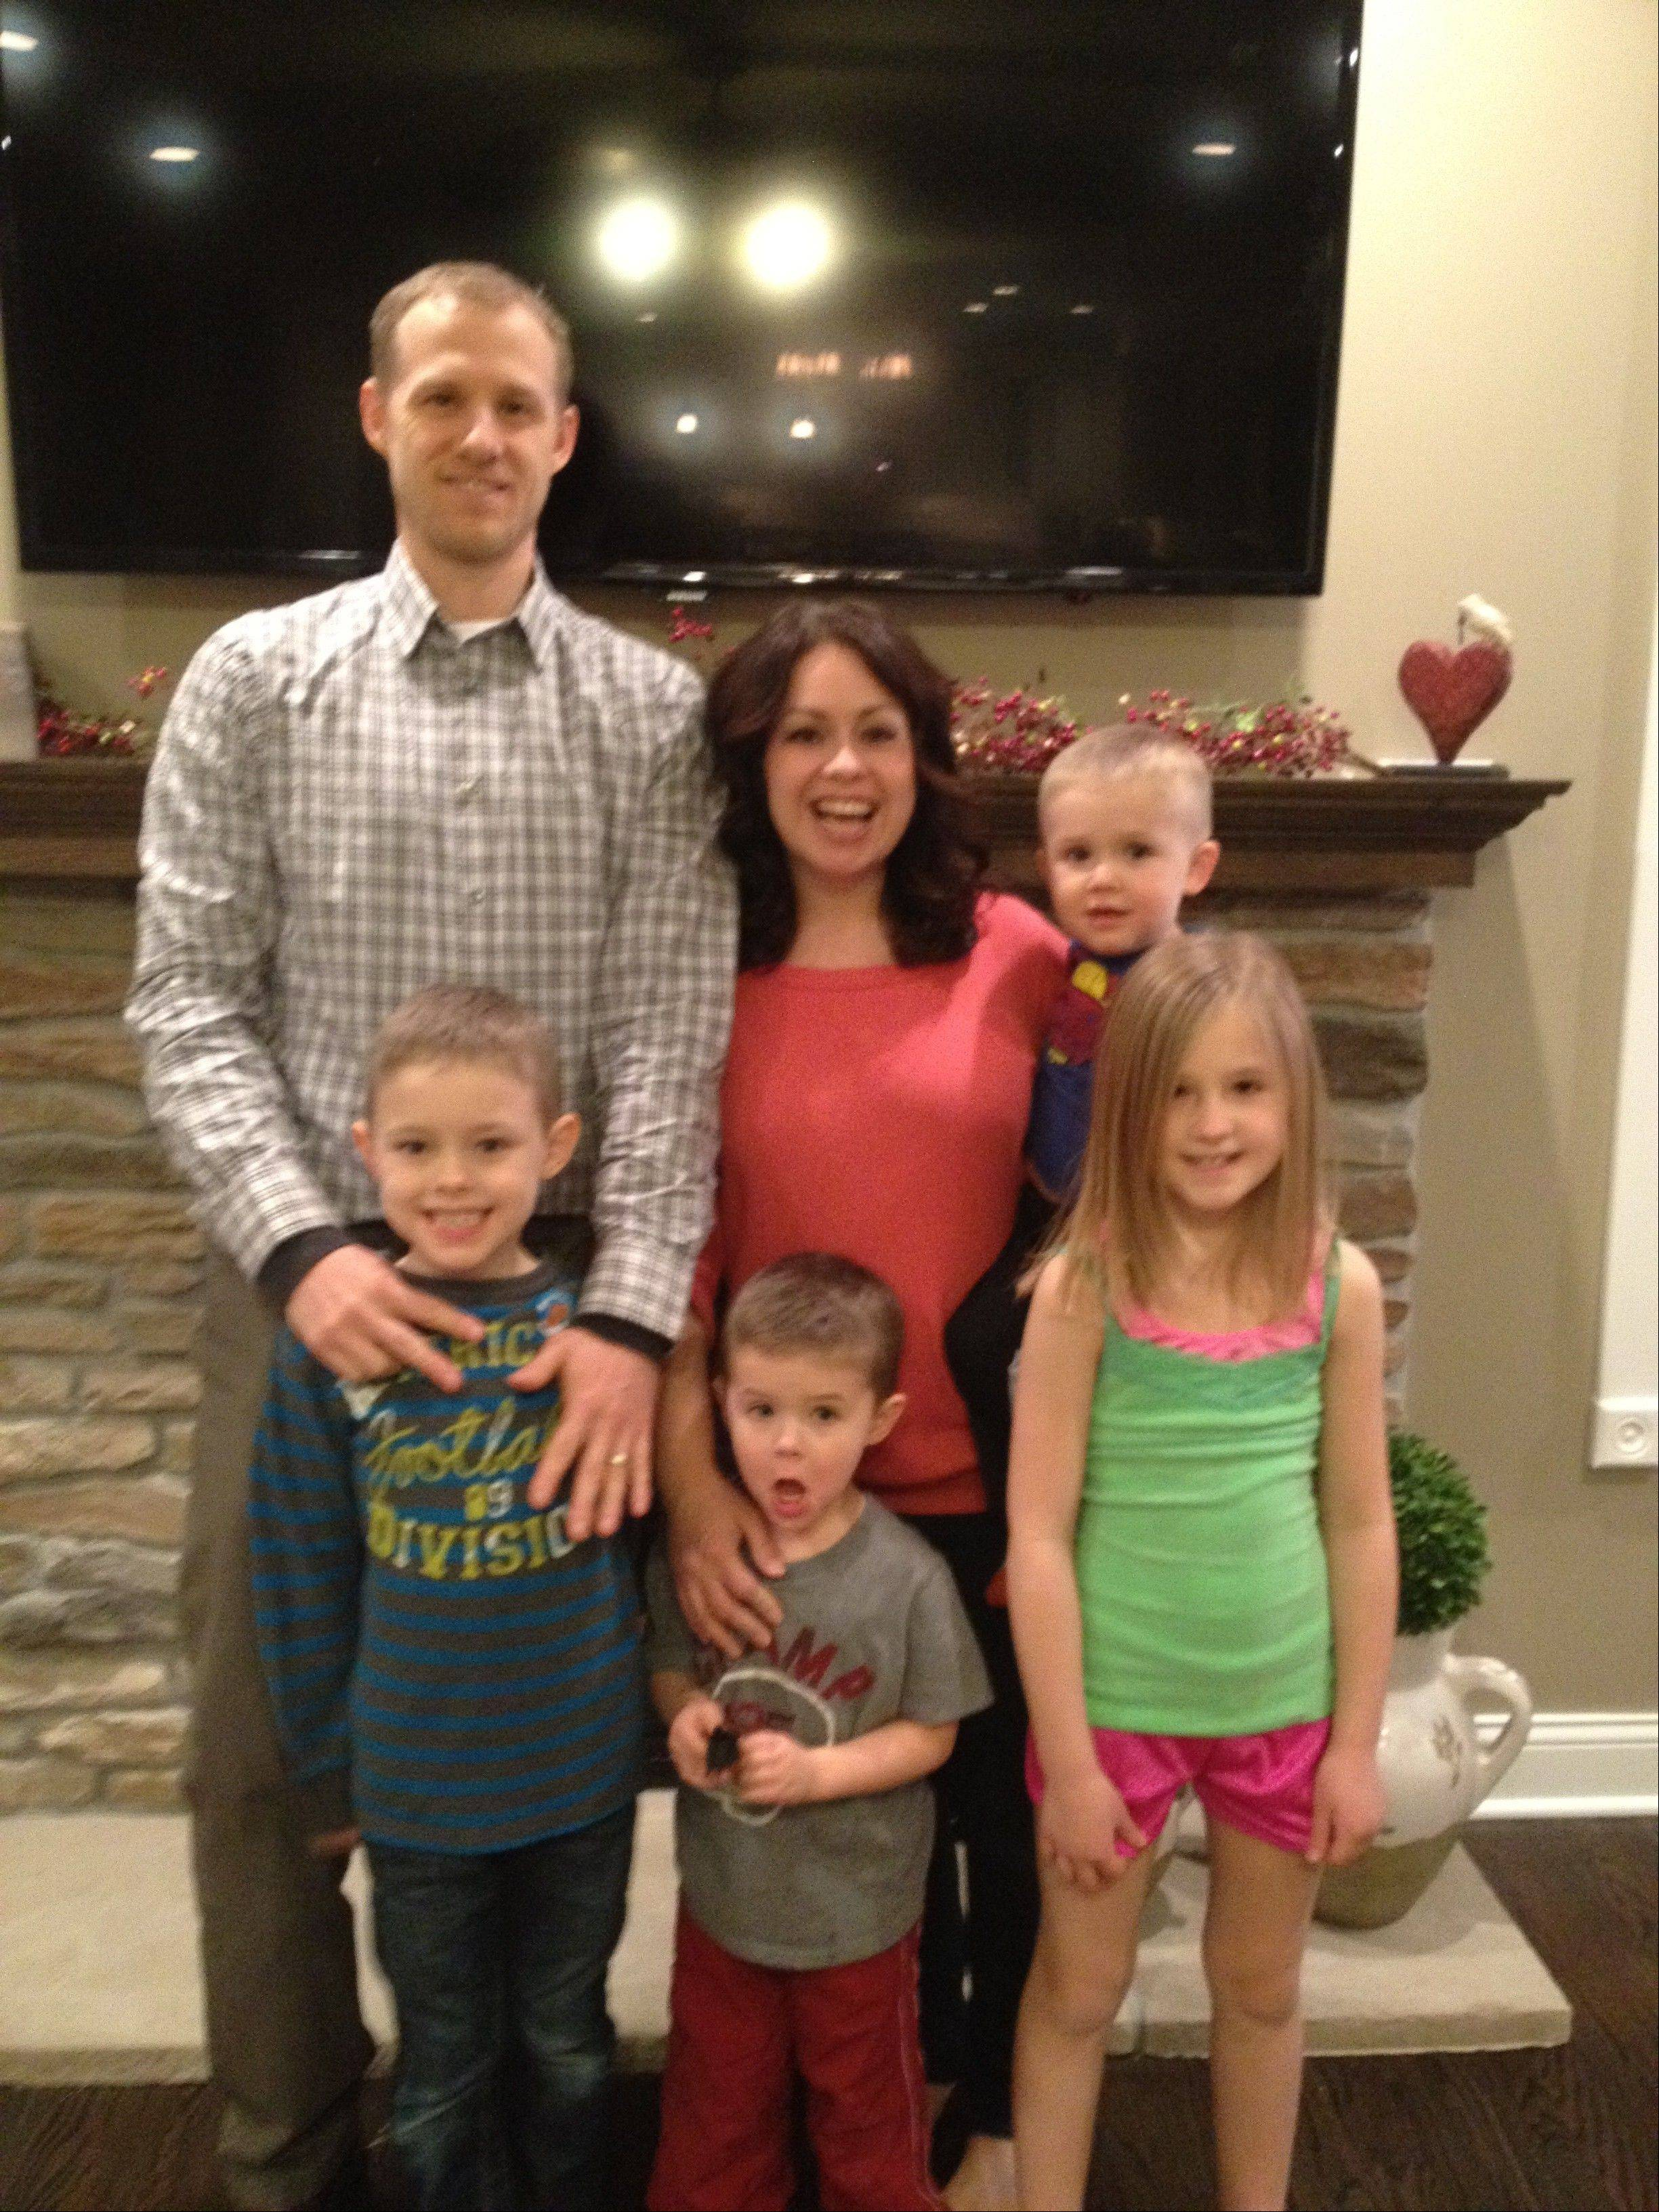 Quick thinking on the basketball court saved Matt Krueger's life when he went into cardiac arrest March 2 in St. Charles. Krueger, 36, of Genoa, is pictured with his wife, Marina, and their children Sydney, 9, John, 7, Cole, 4, and Caleb, 2.